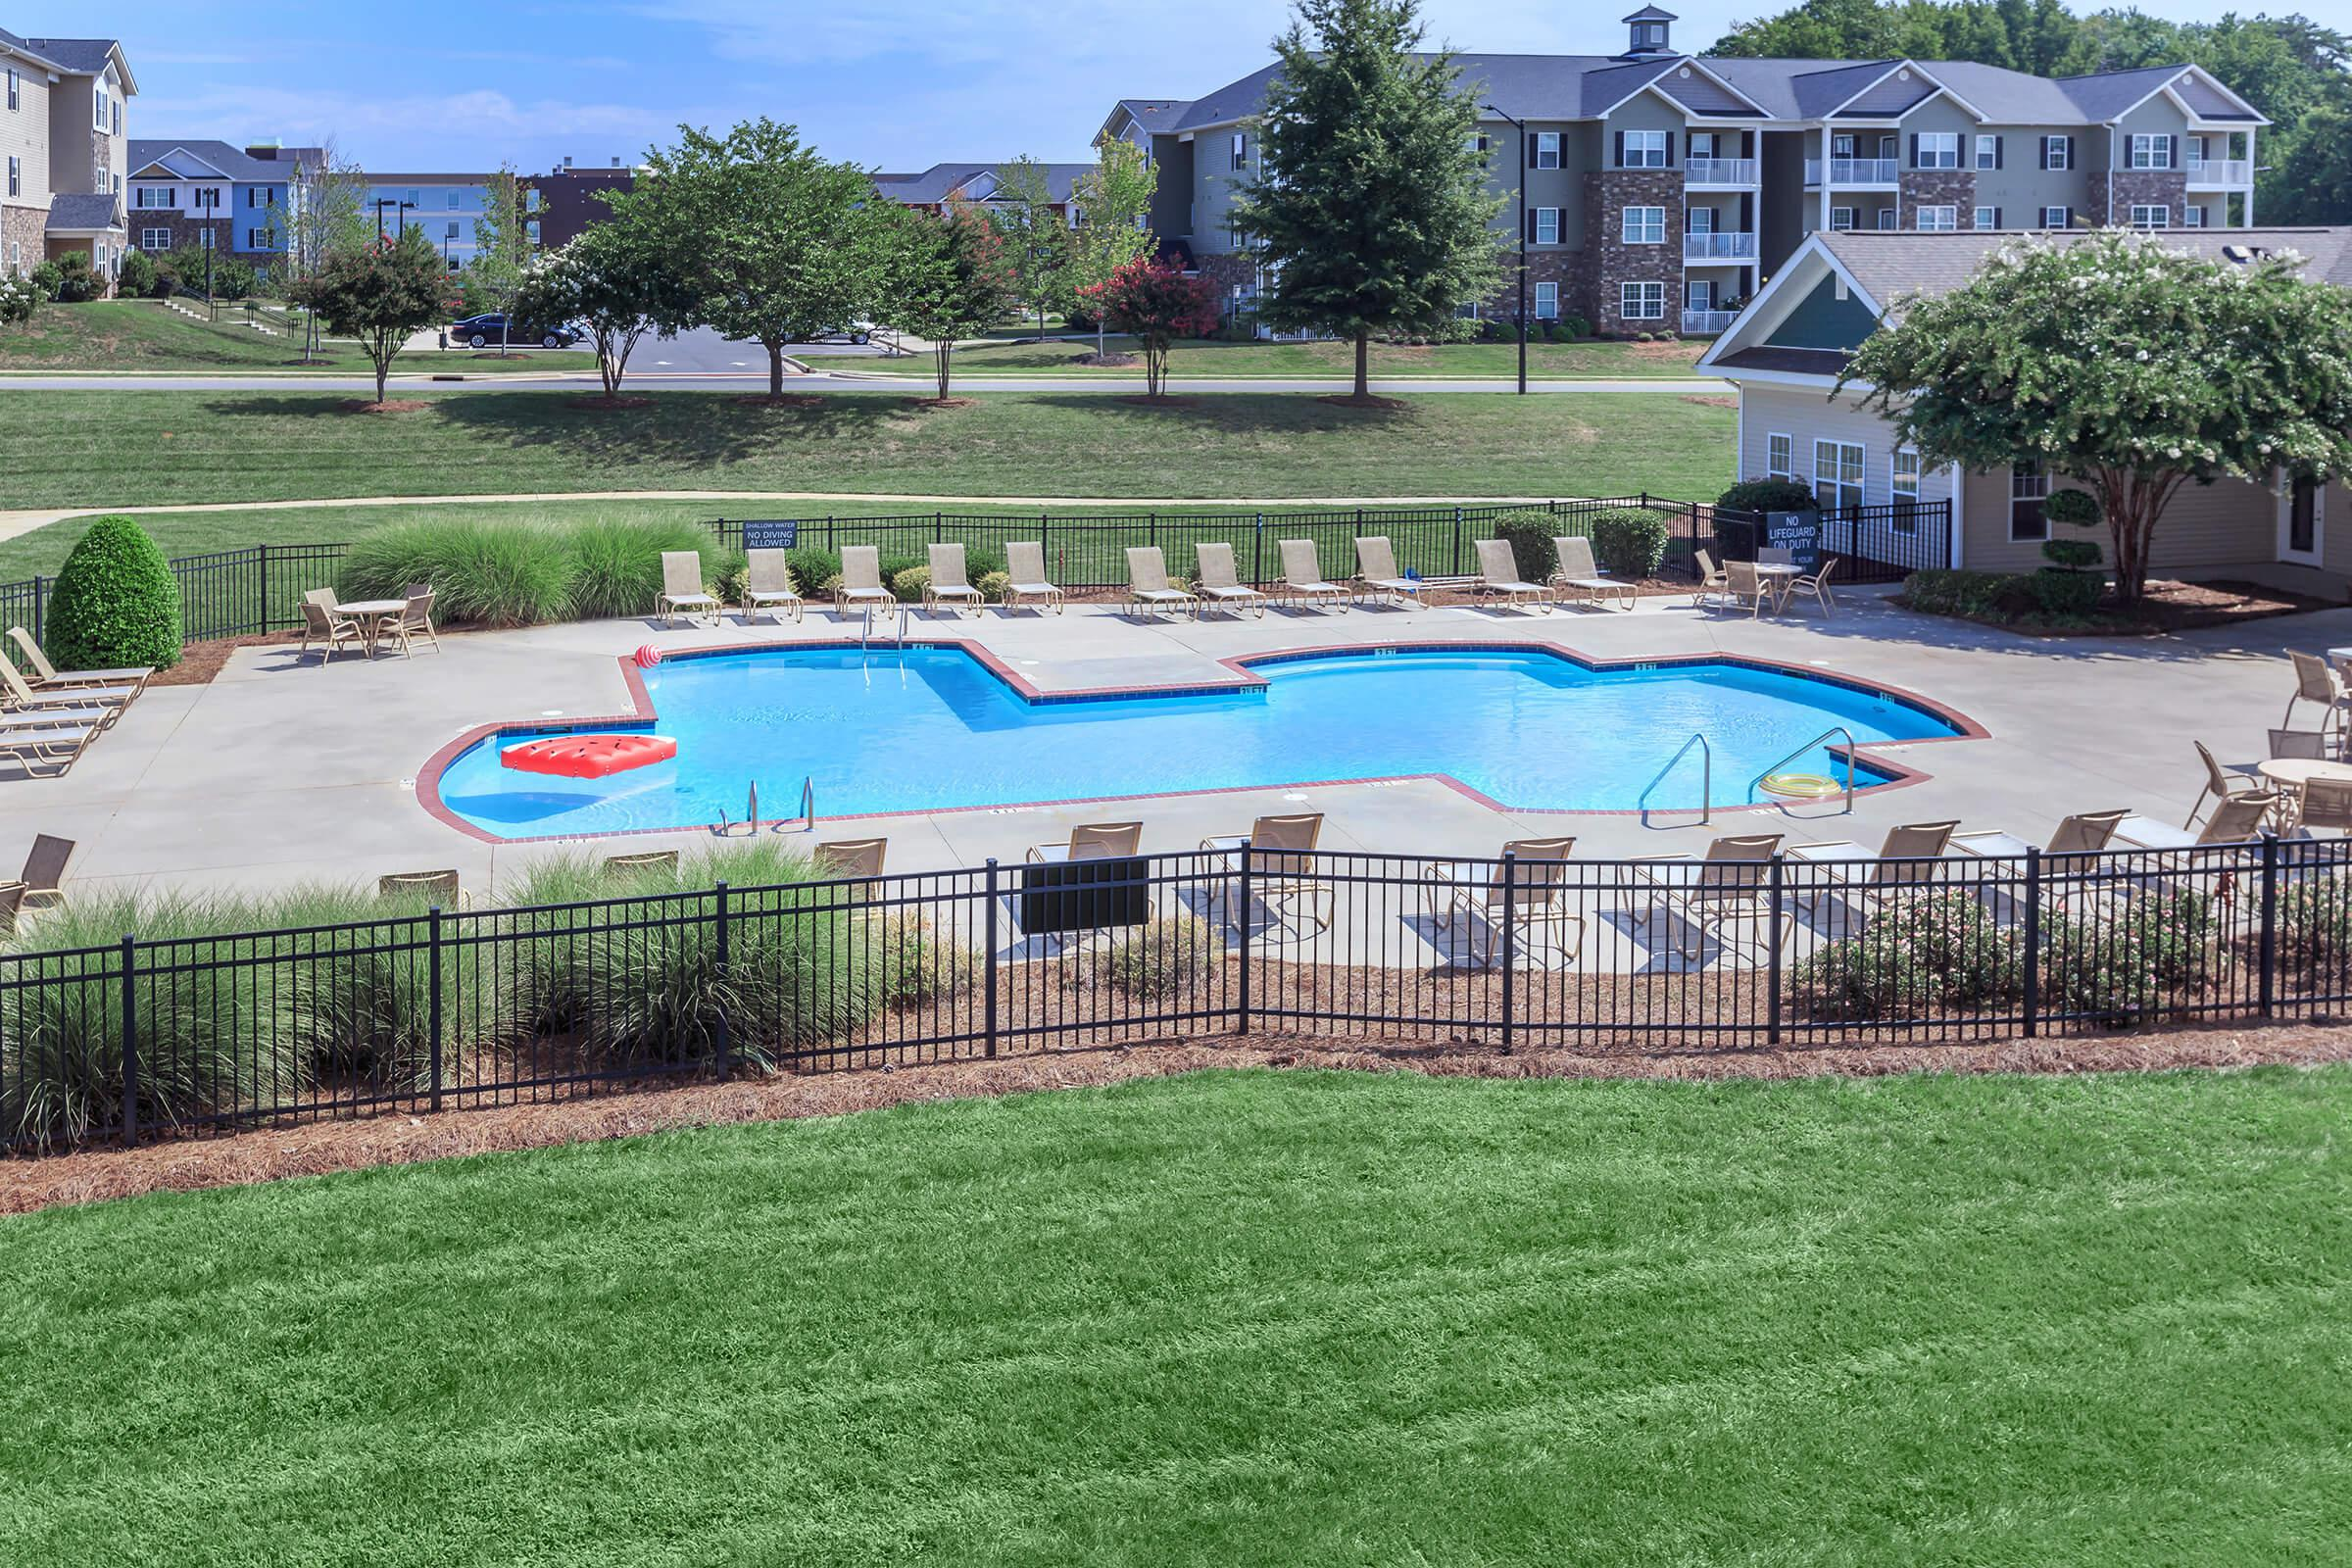 a large lawn in front of a pool